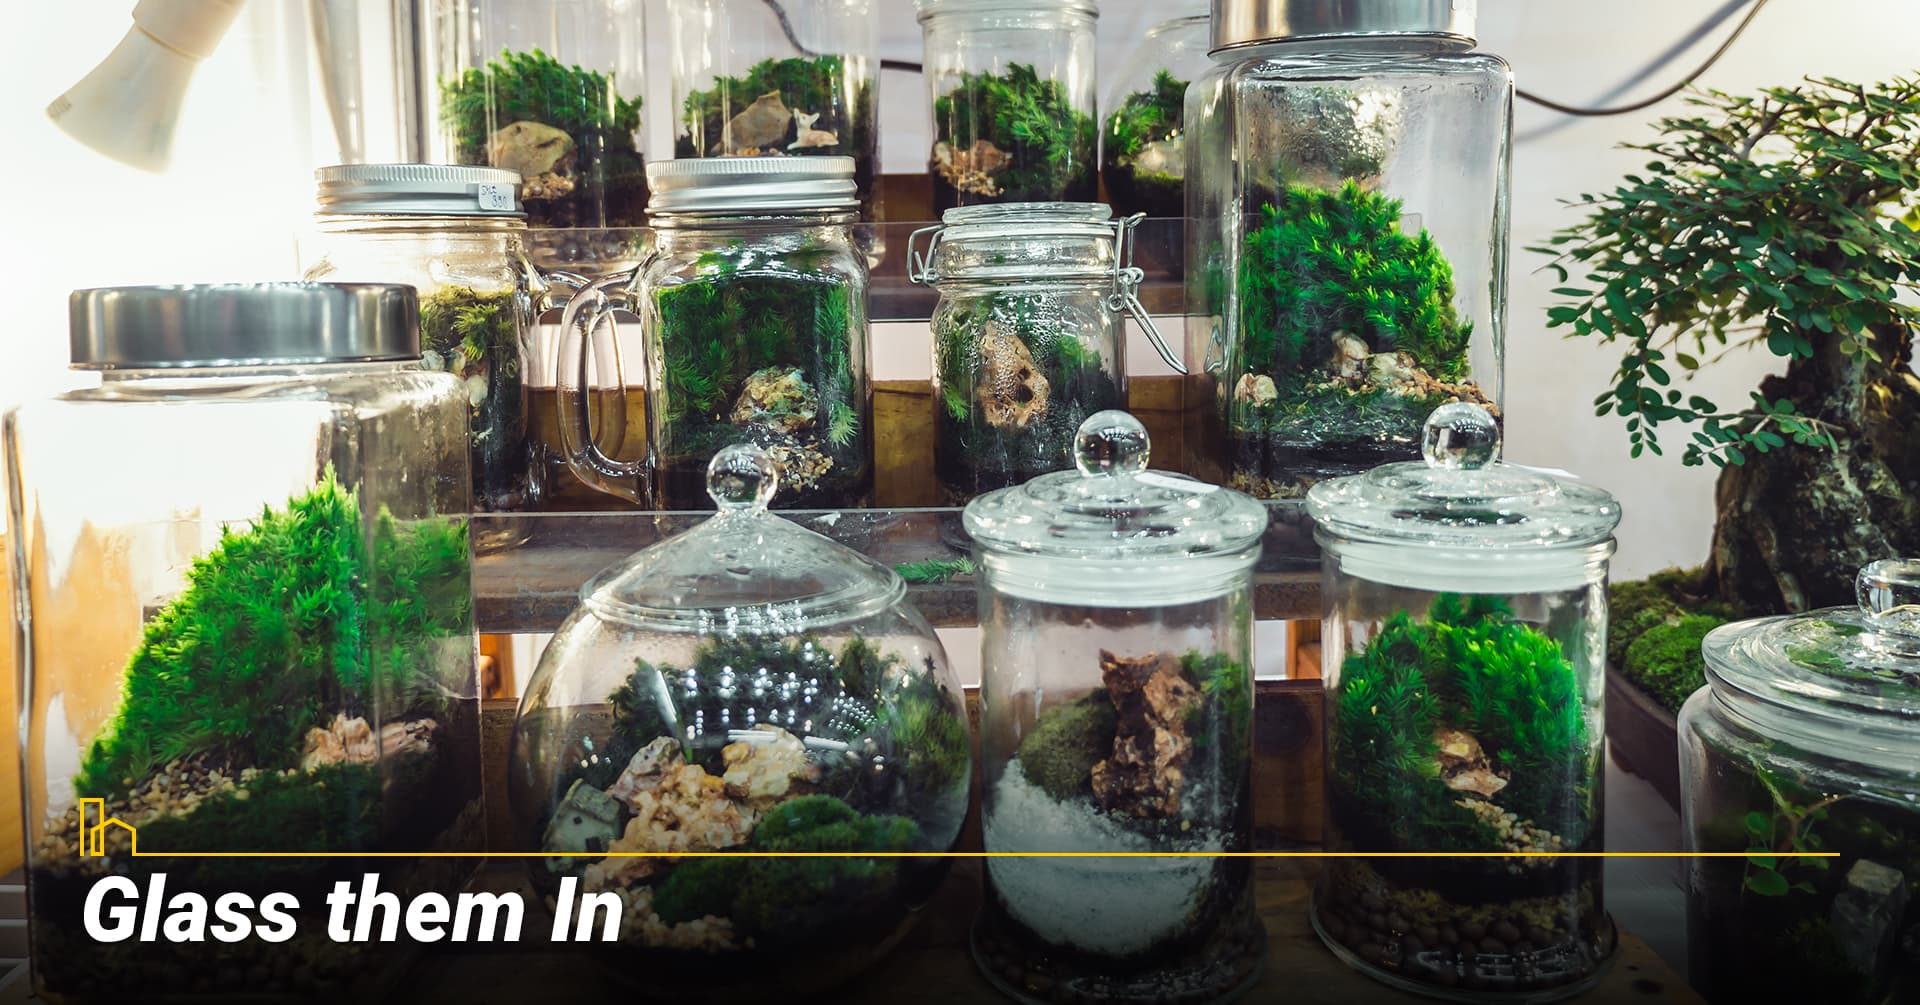 Glass them In, Use glass terrariums